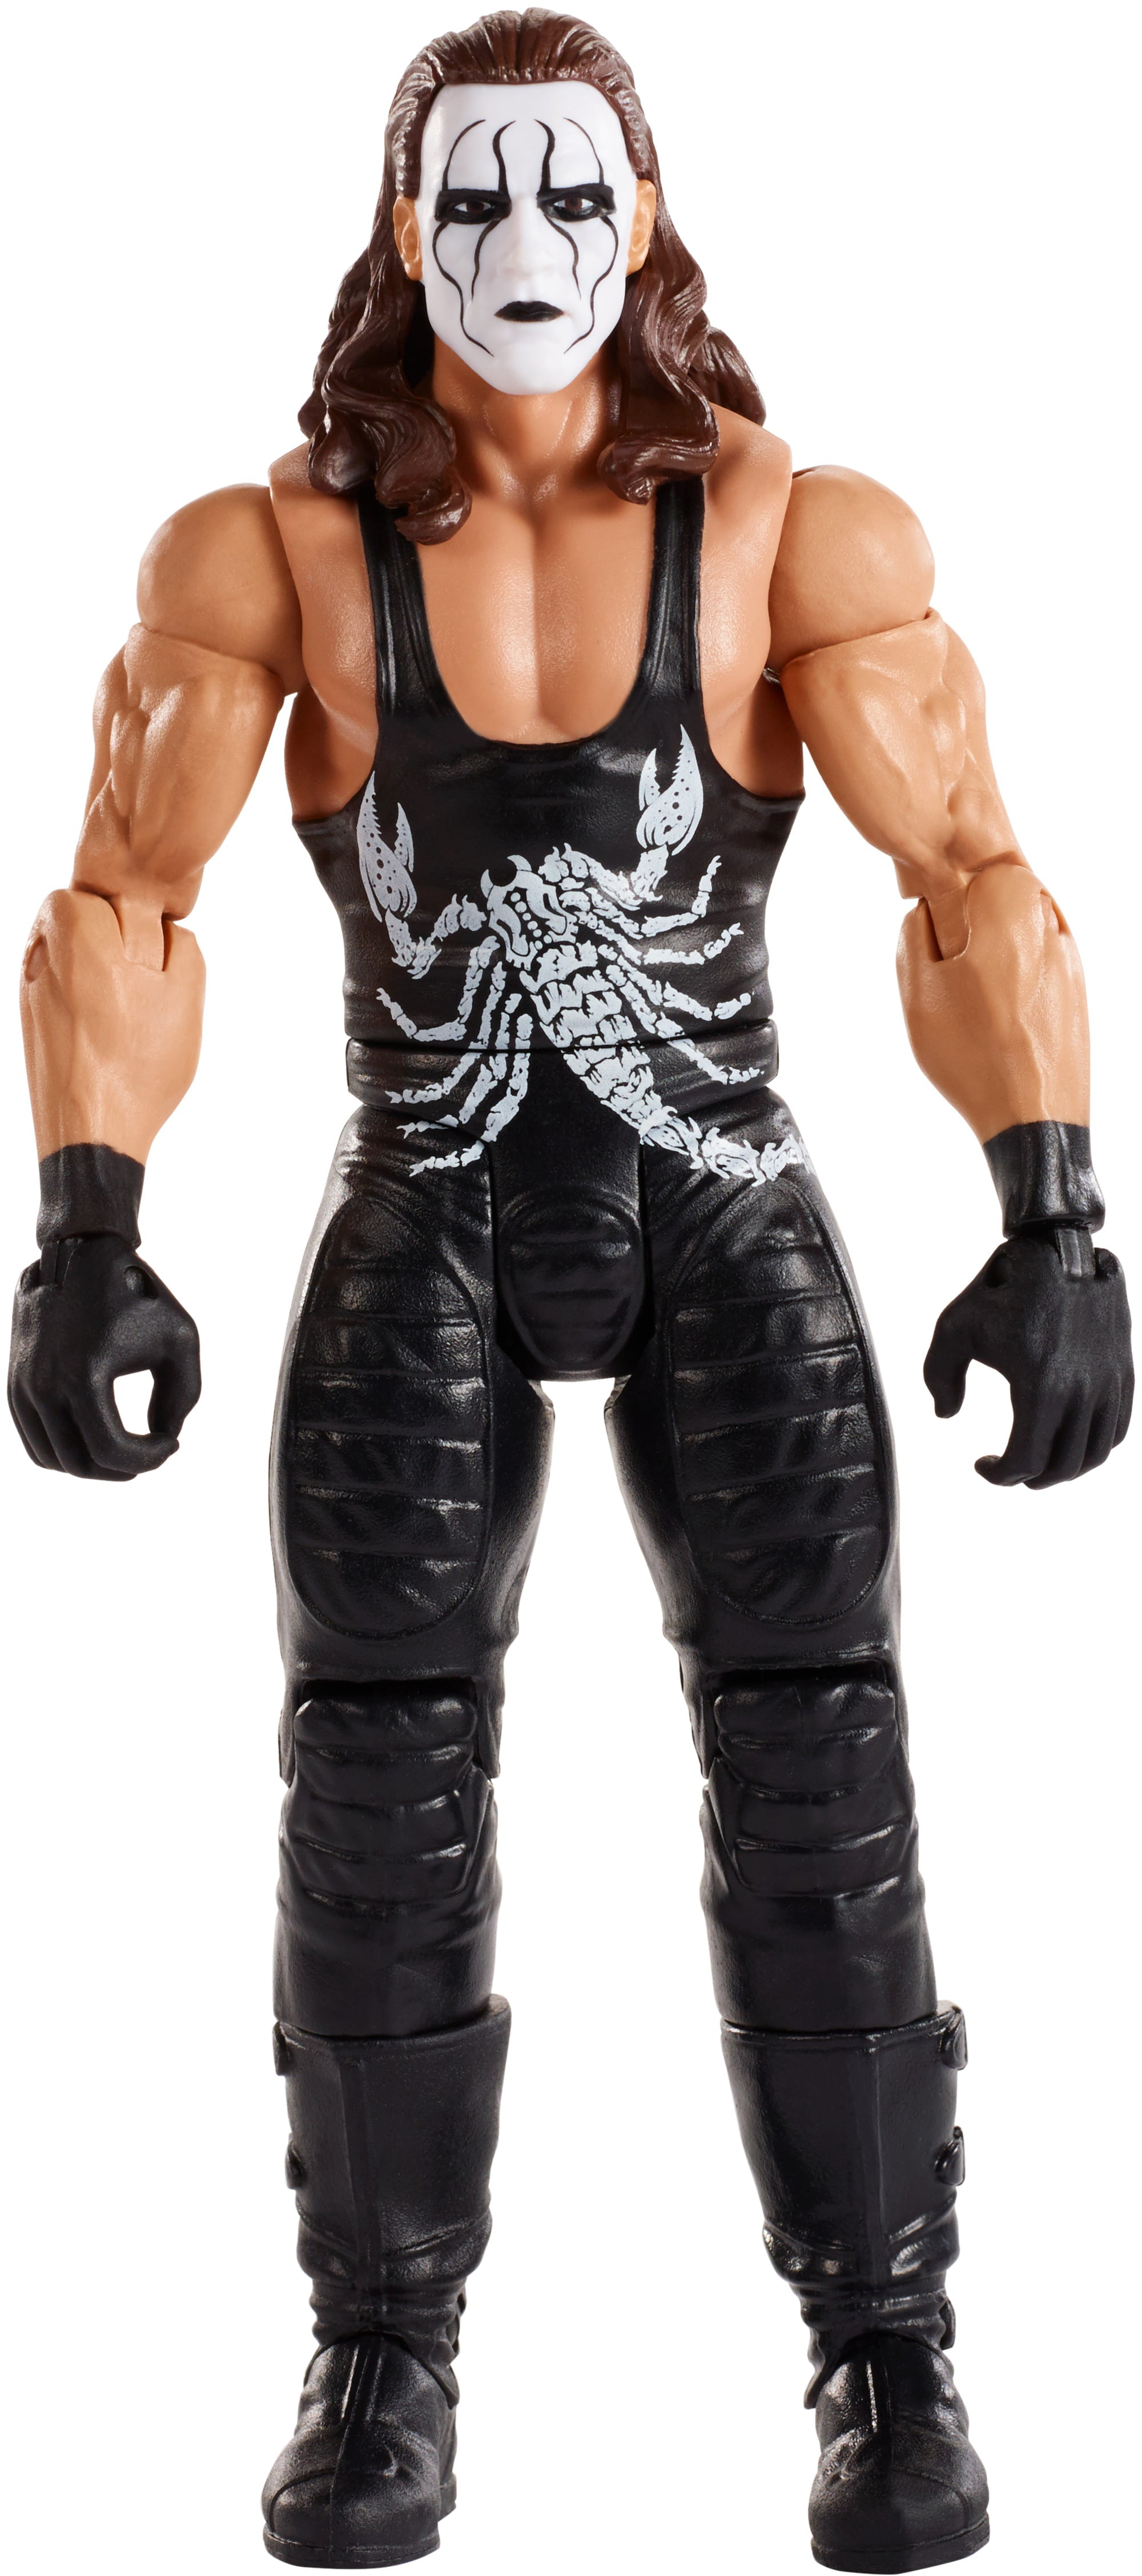 WWE Sting Action Figure by Mattel